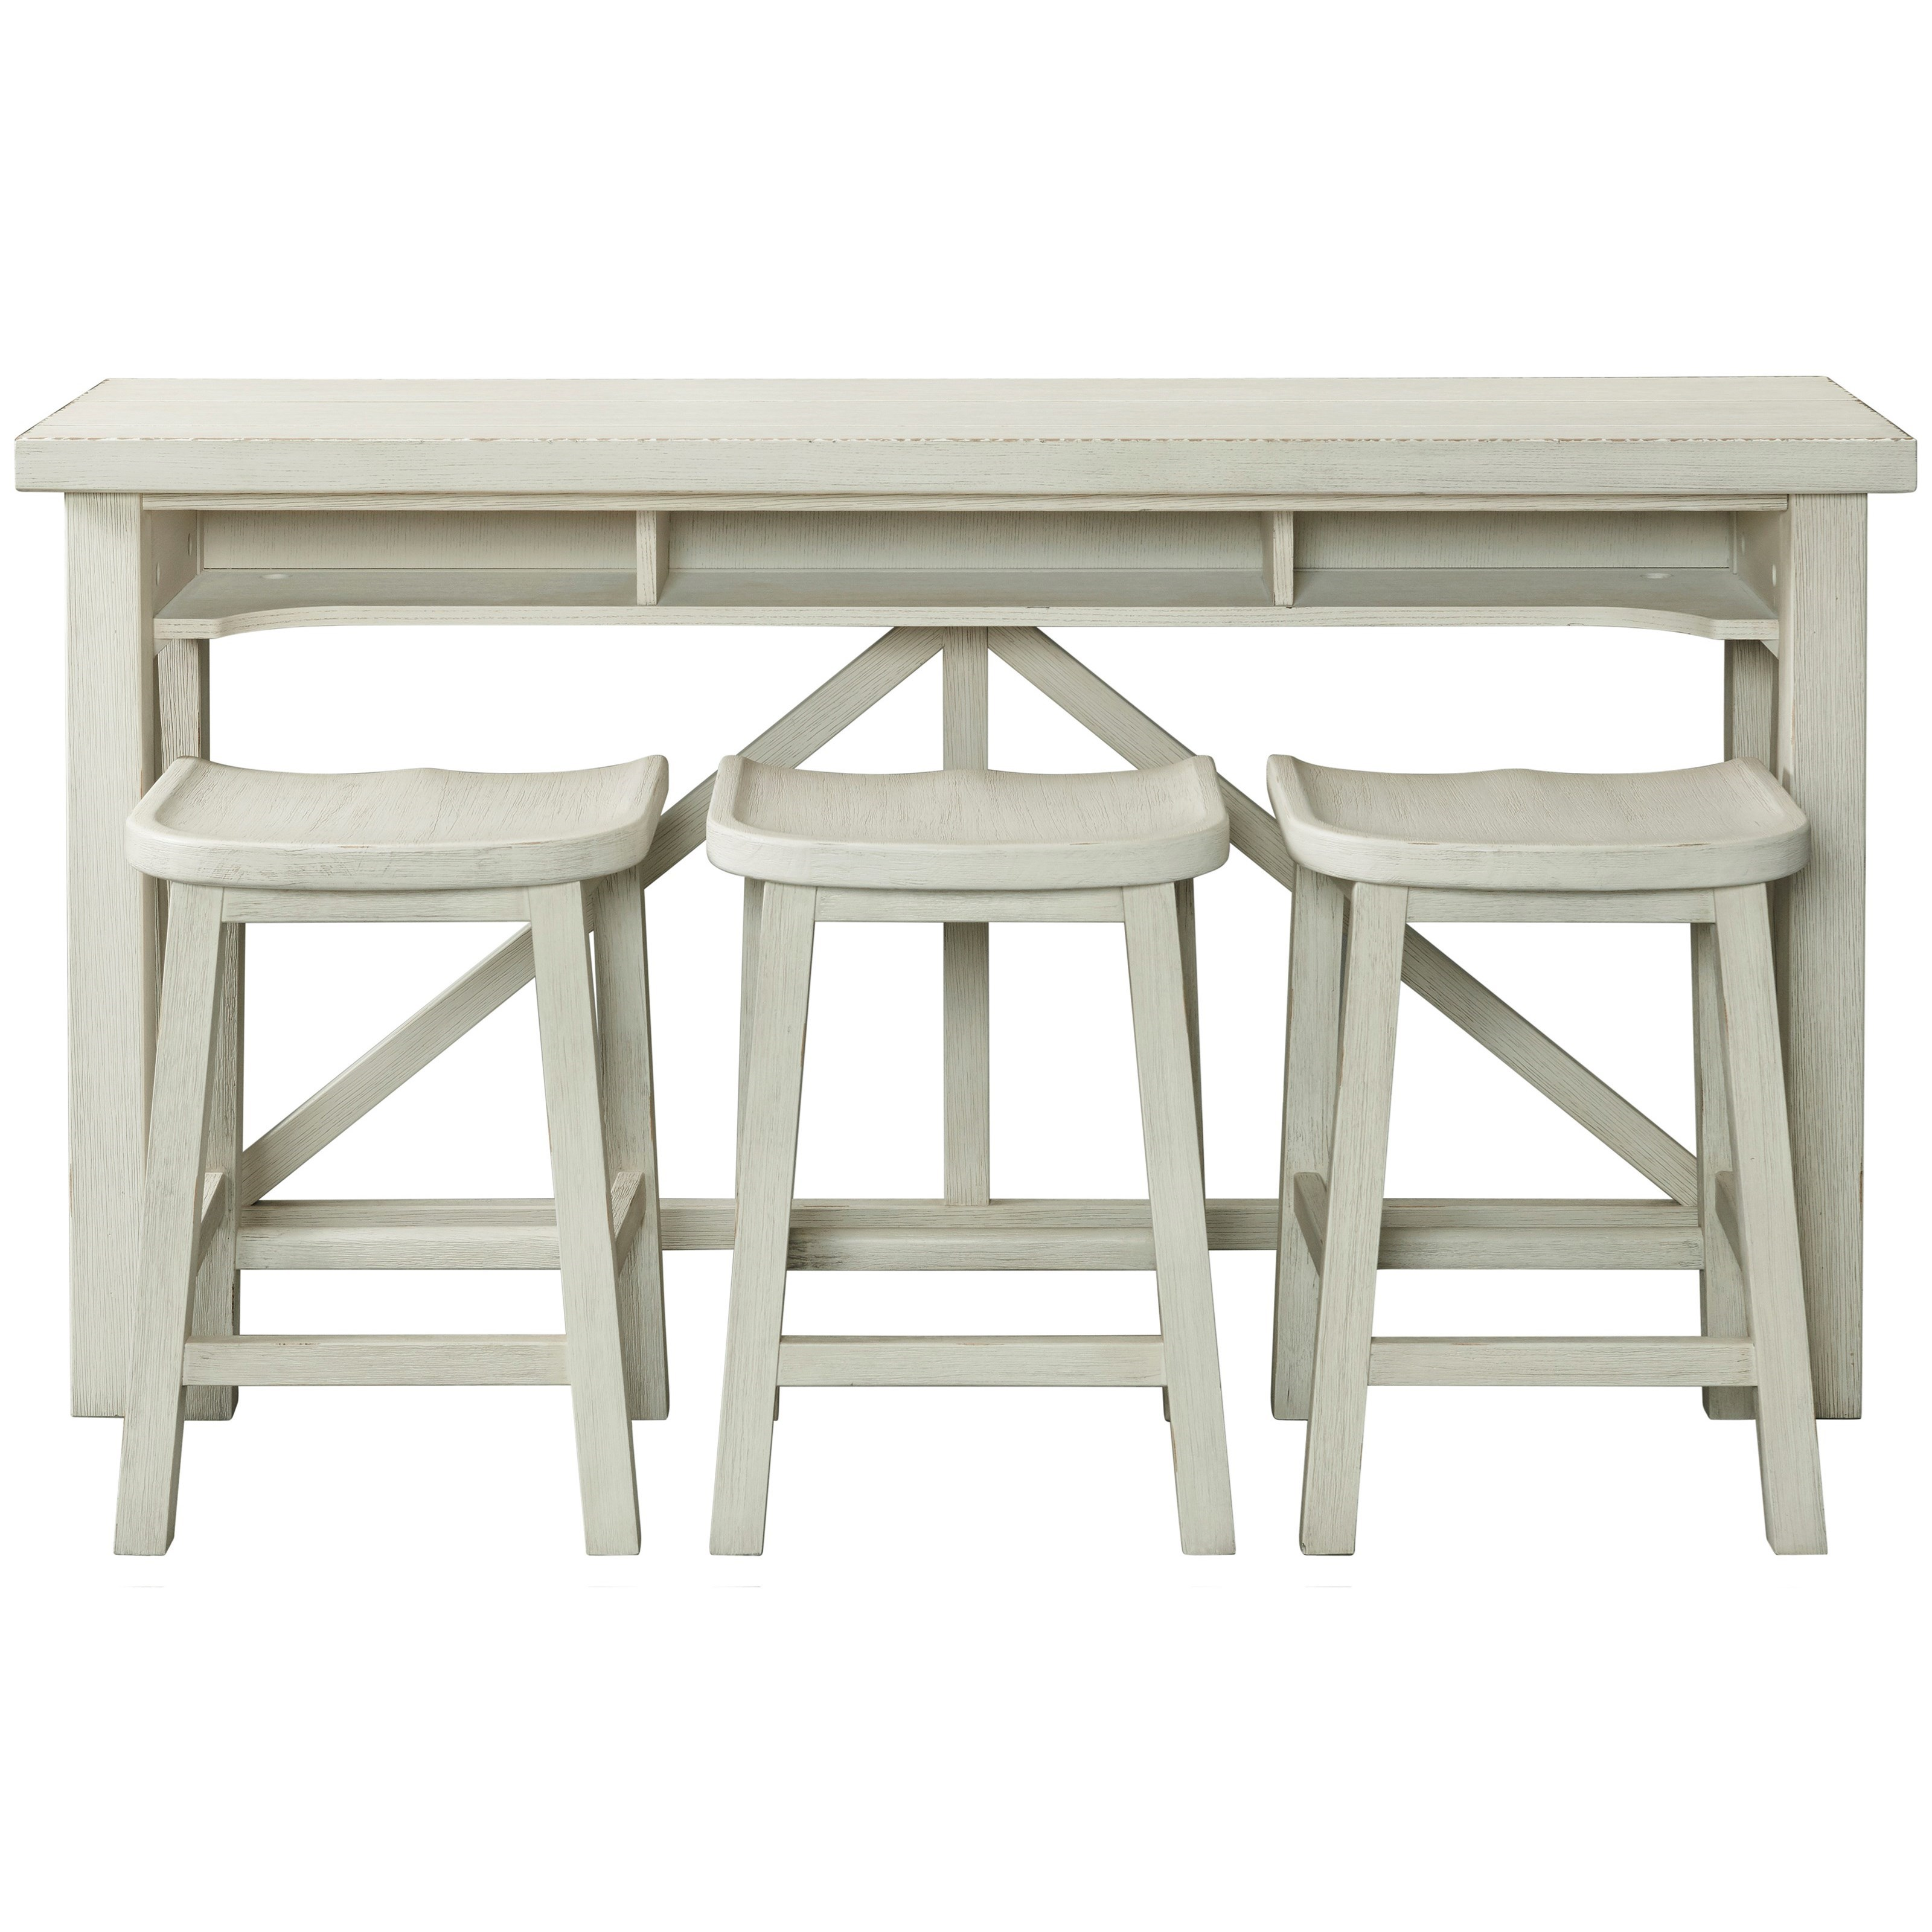 Aberdeen Sofa Table with Stools by Riverside Furniture at A1 Furniture & Mattress